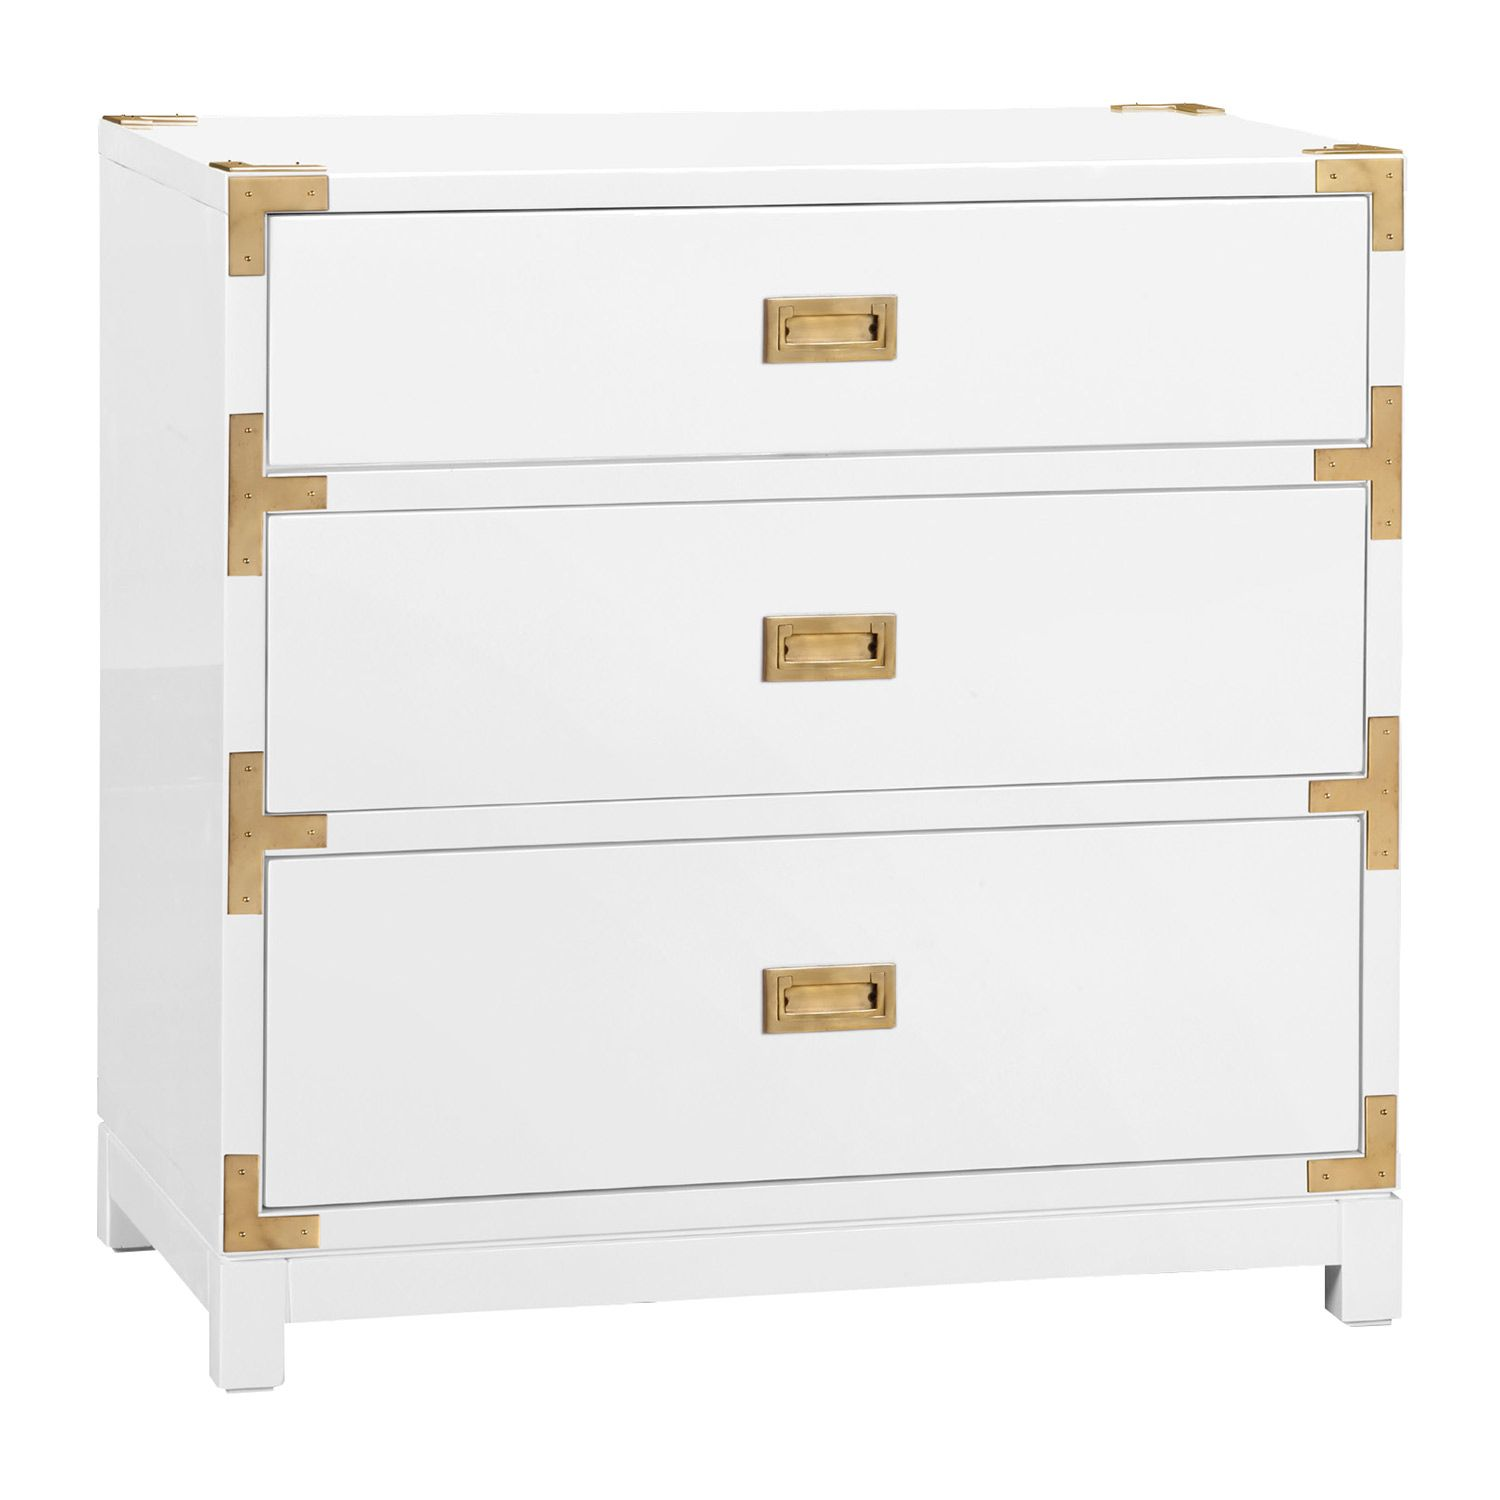 The Bungalow 5 Victoria Side Table Provides A Bold Take On Classic Campaign Style Accenting A Glossy White Side Tables White High Gloss Dresser White Dresser